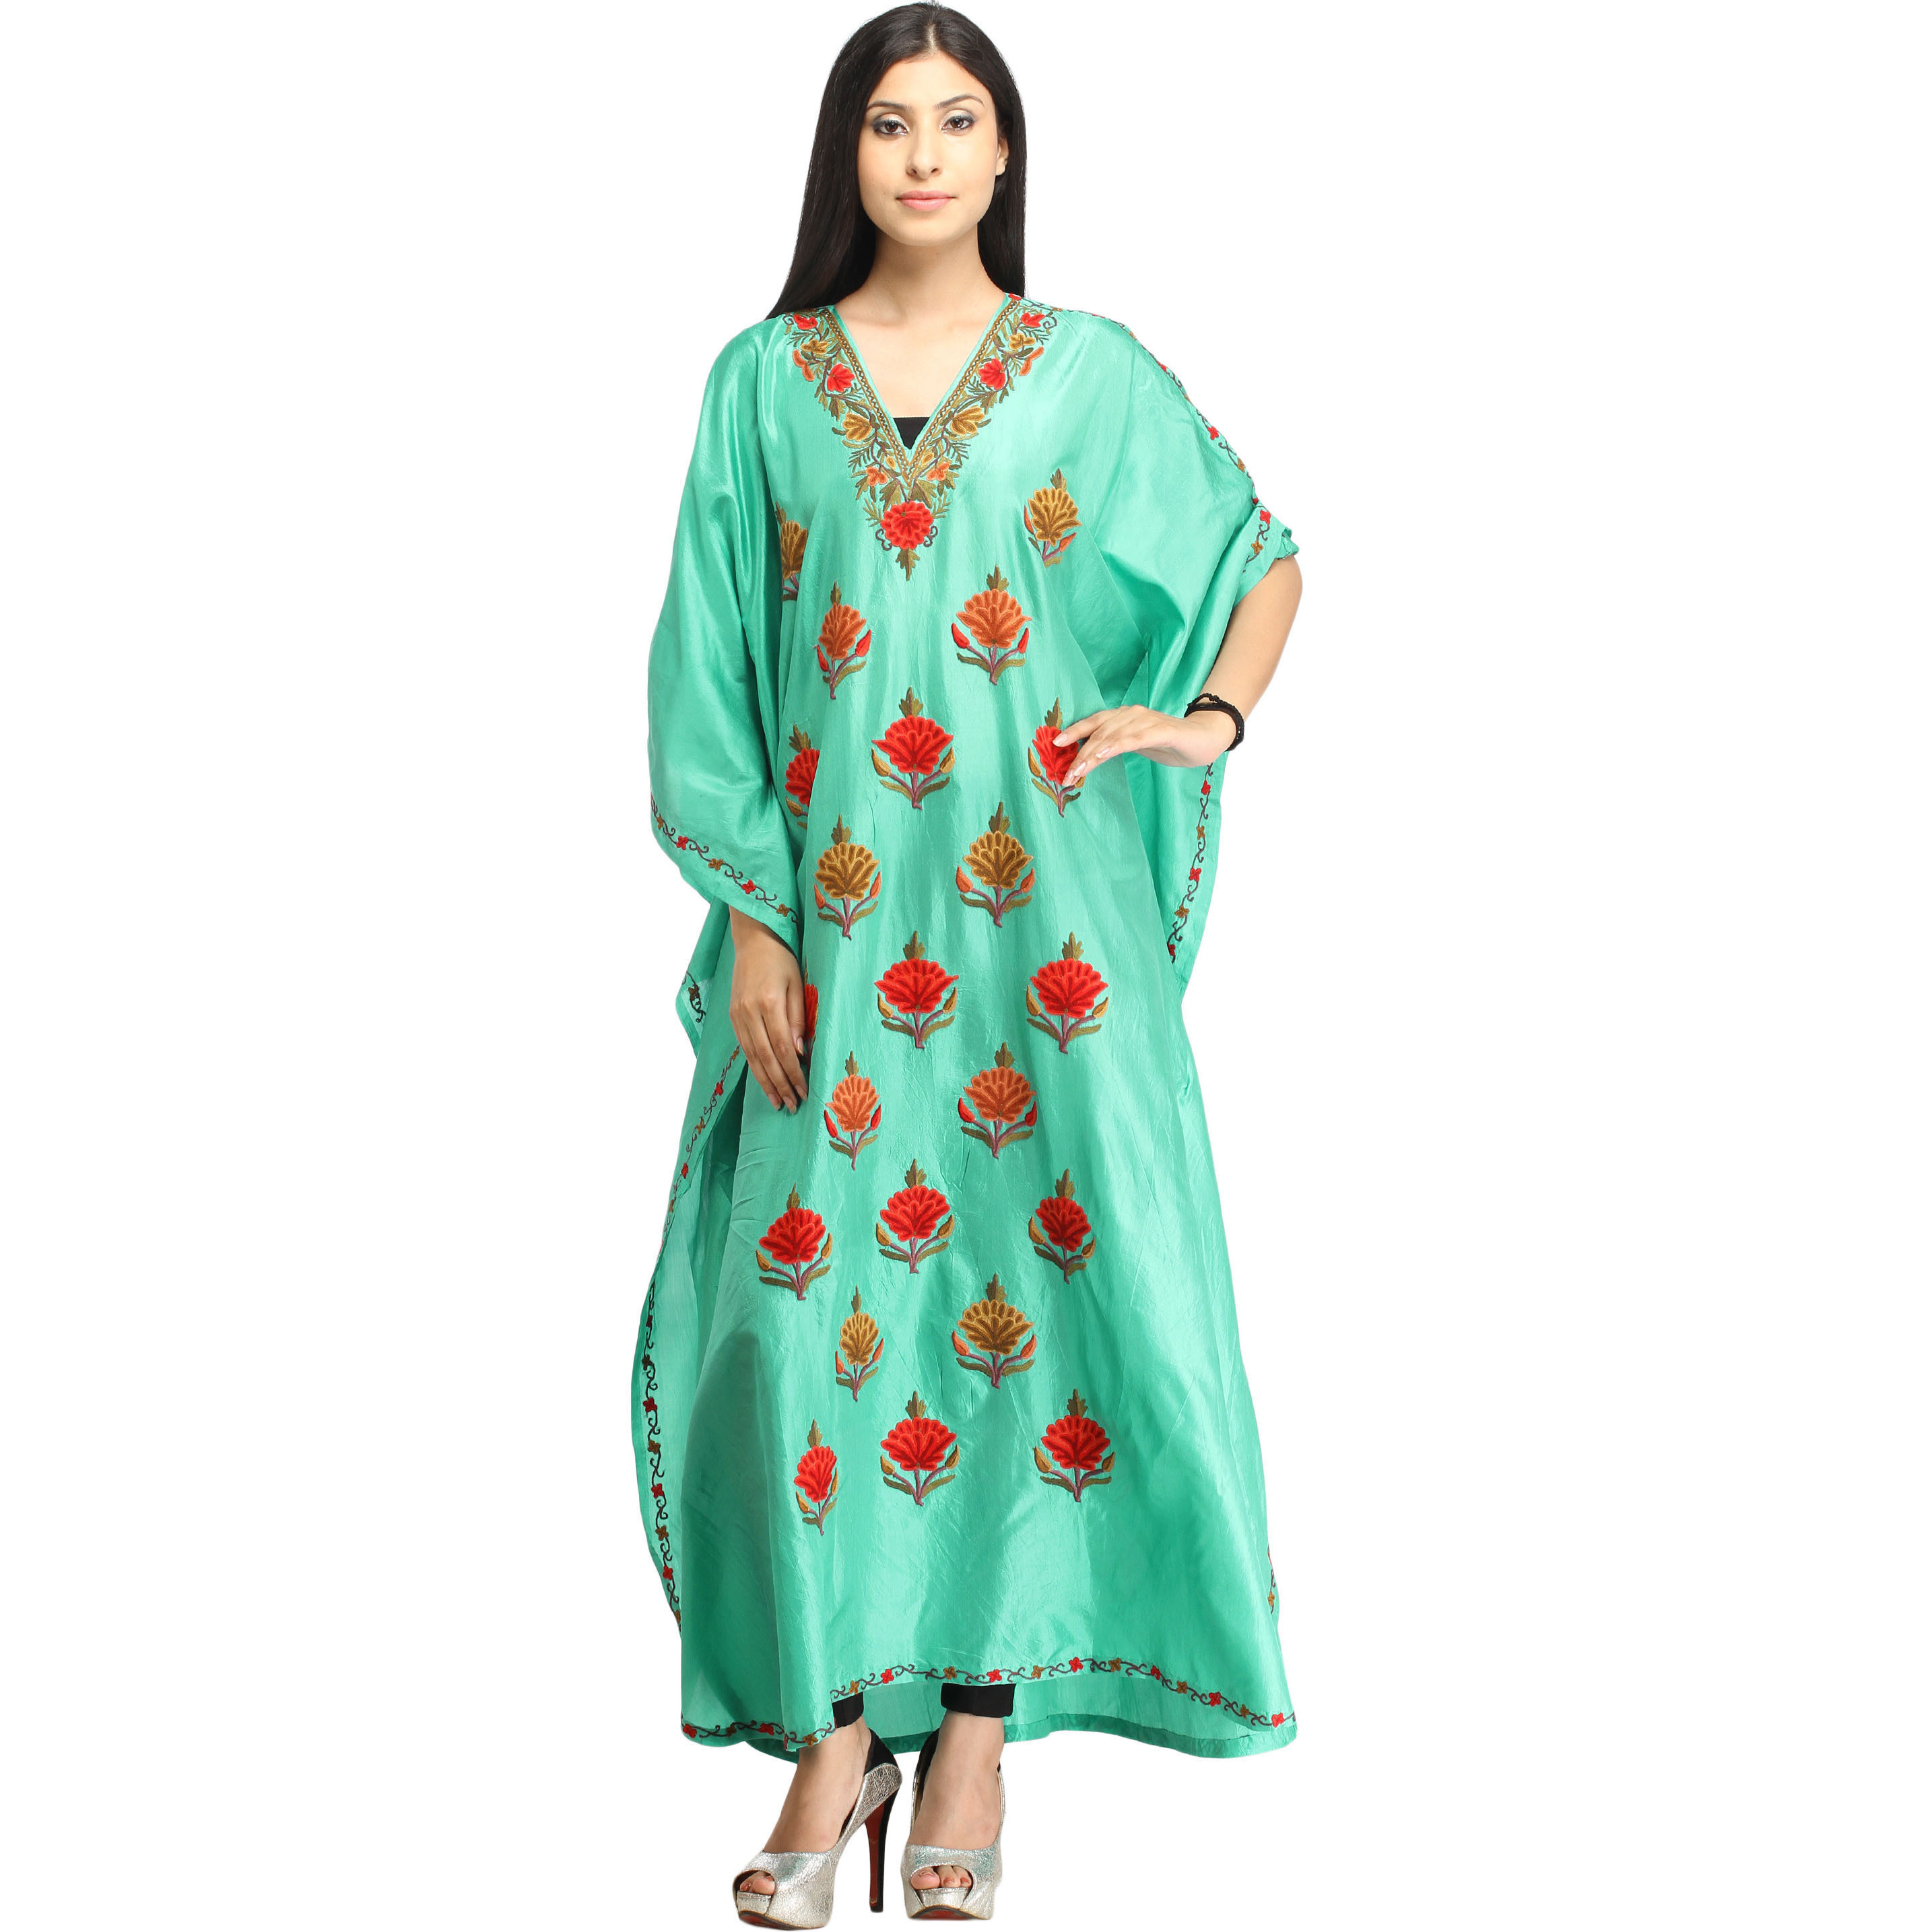 Cockatoo-Green Kaftan from Kashmir with Ari Hand-Embroidered Flowers